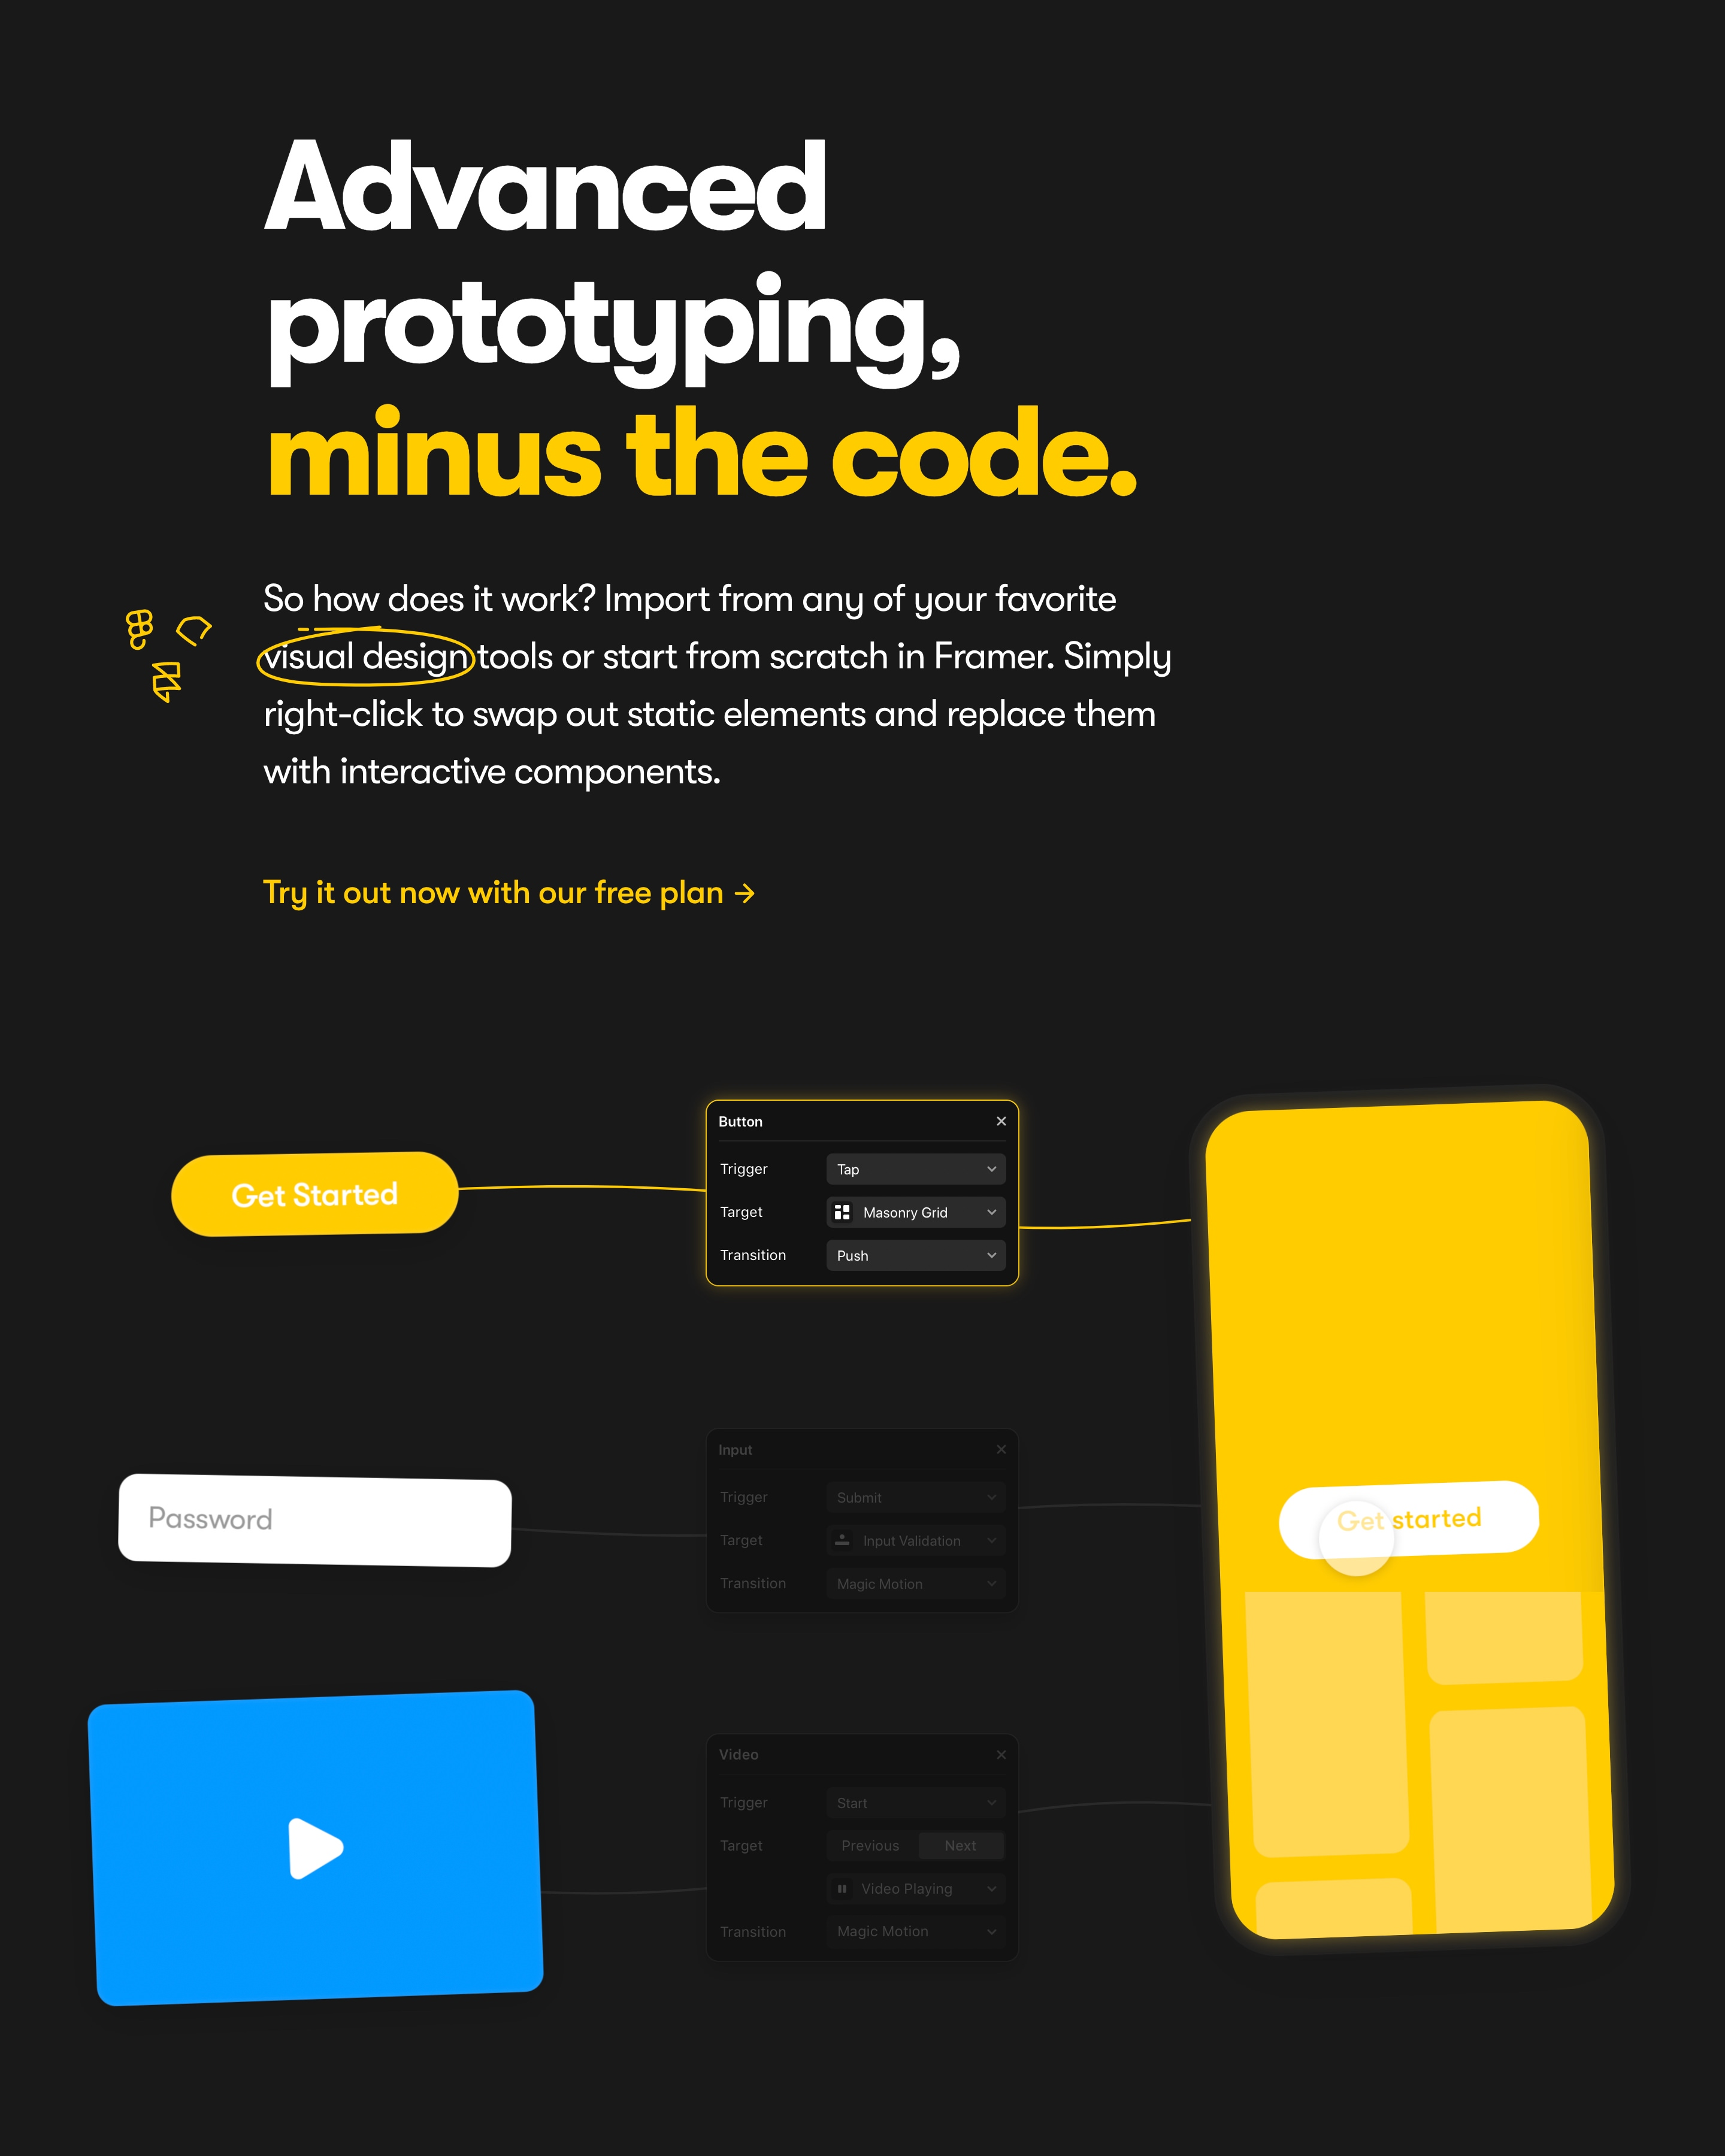 Feature with Prototyping Illustrations on Dark Background